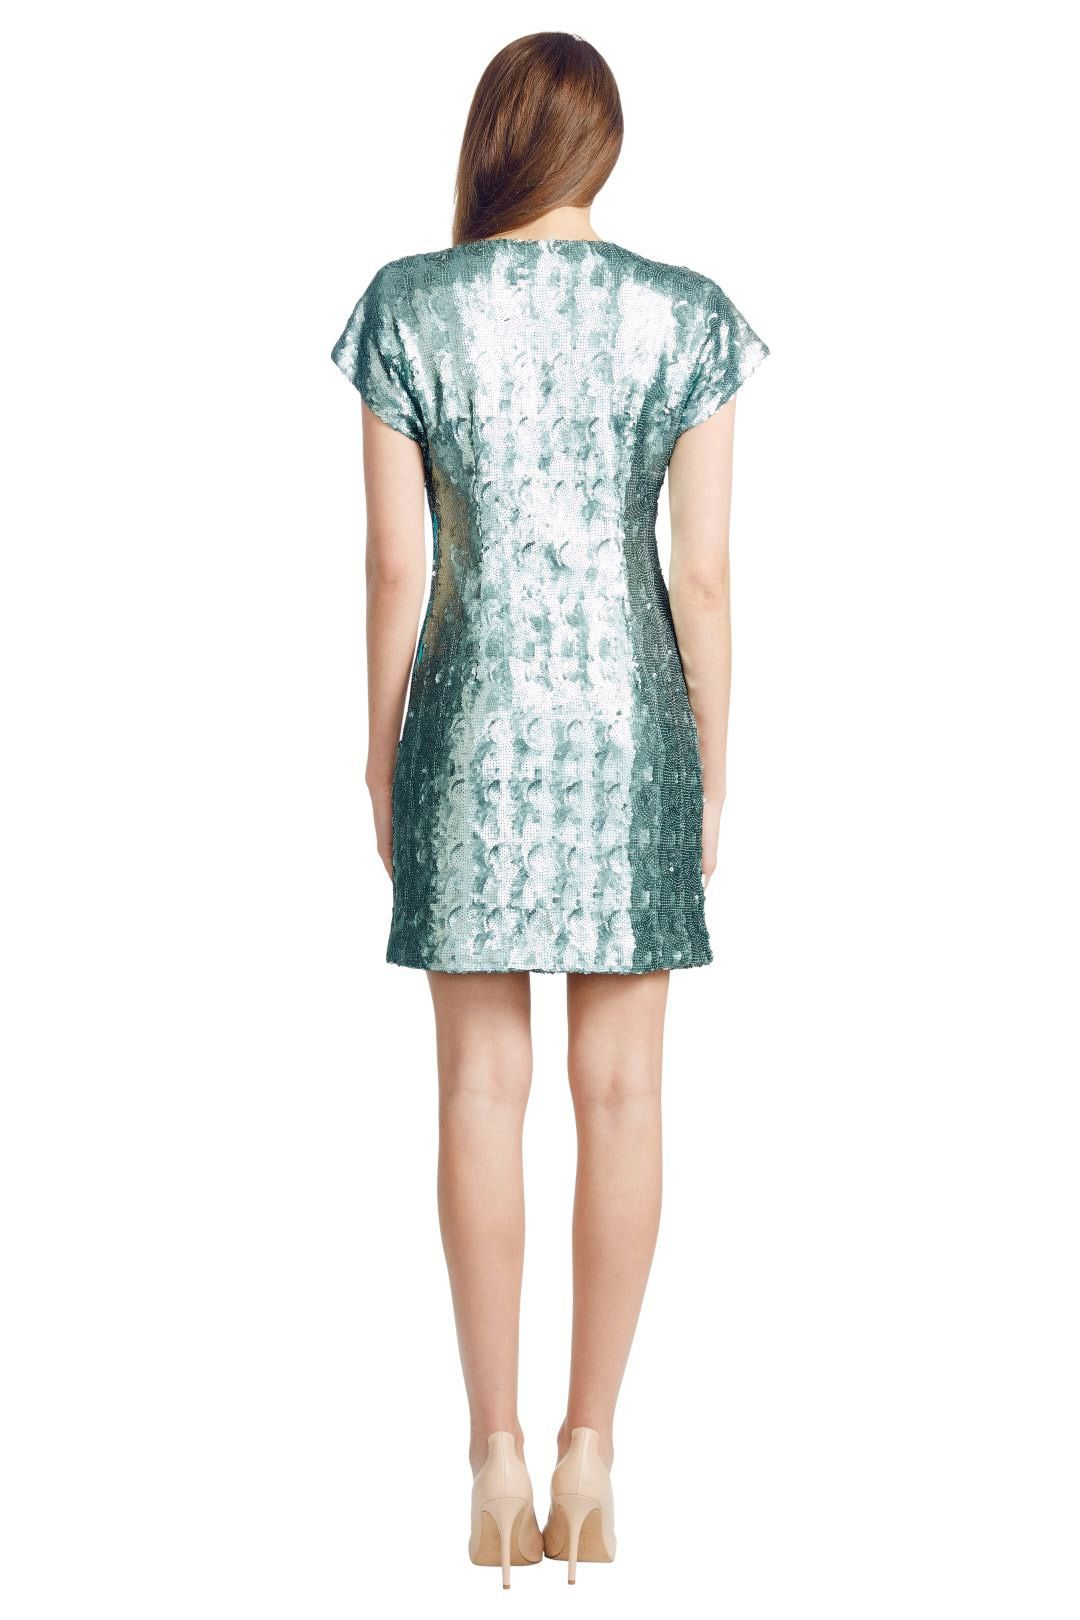 Wayne Cooper - Mermaid Shift Dress - Green - Back